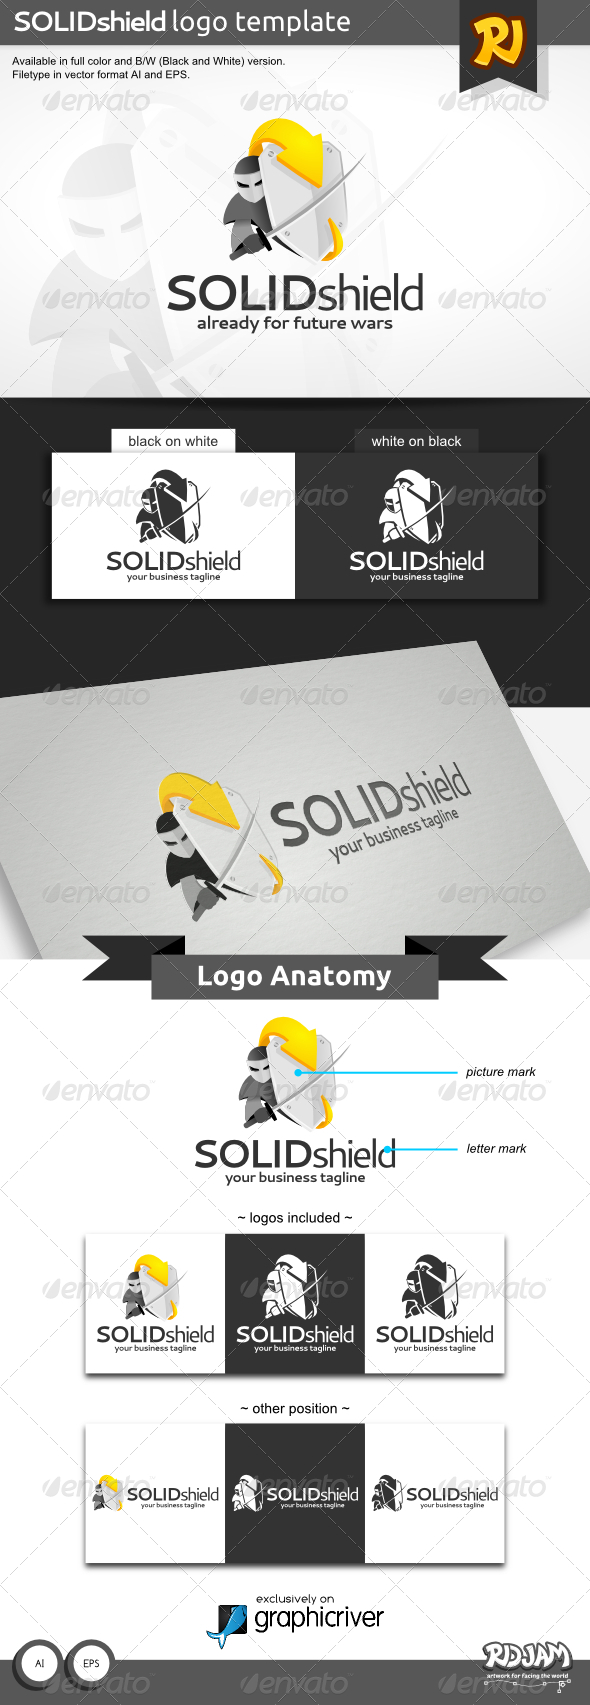 GraphicRiver SolidShield Logo 8716949